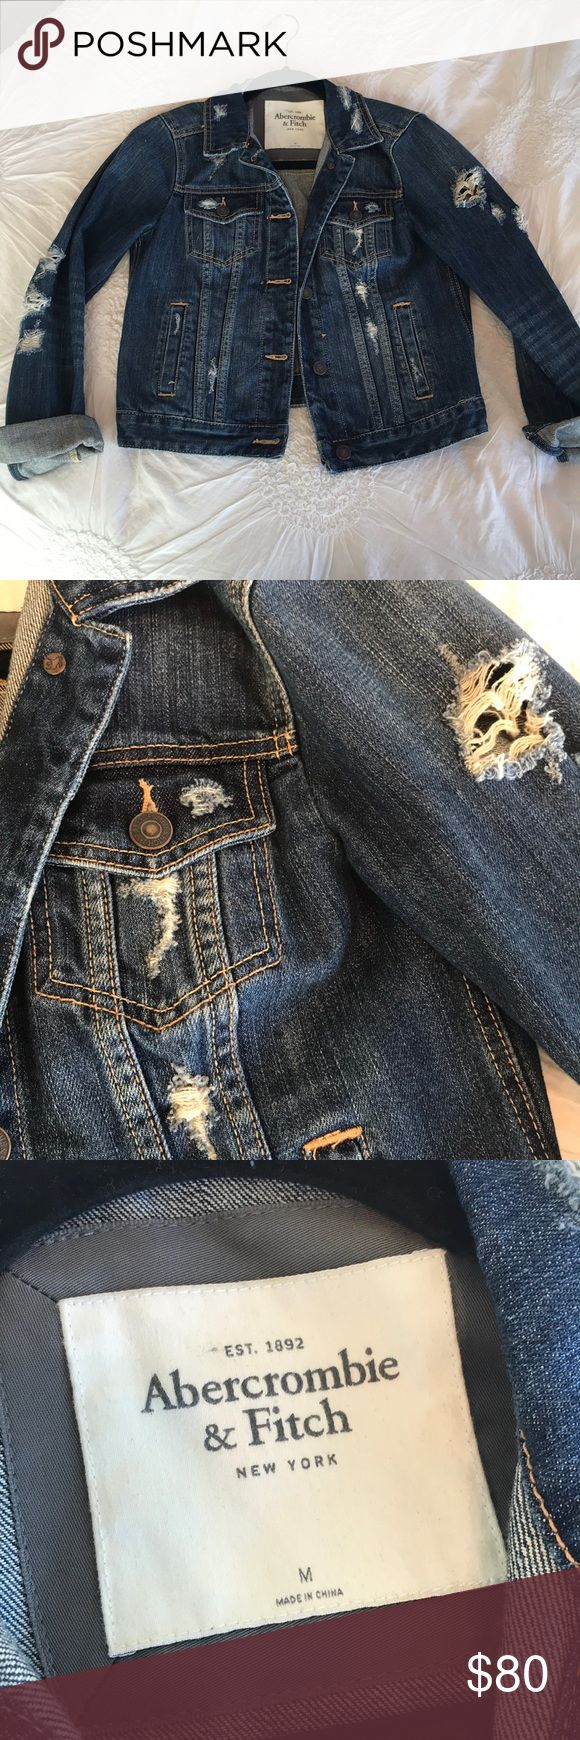 Abercrombie and Fitch jean jacket Distressed denim jacket, medium/dark wash, only worn a couple times, in perfect condition Abercrombie & Fitch Jackets & Coats Jean Jackets